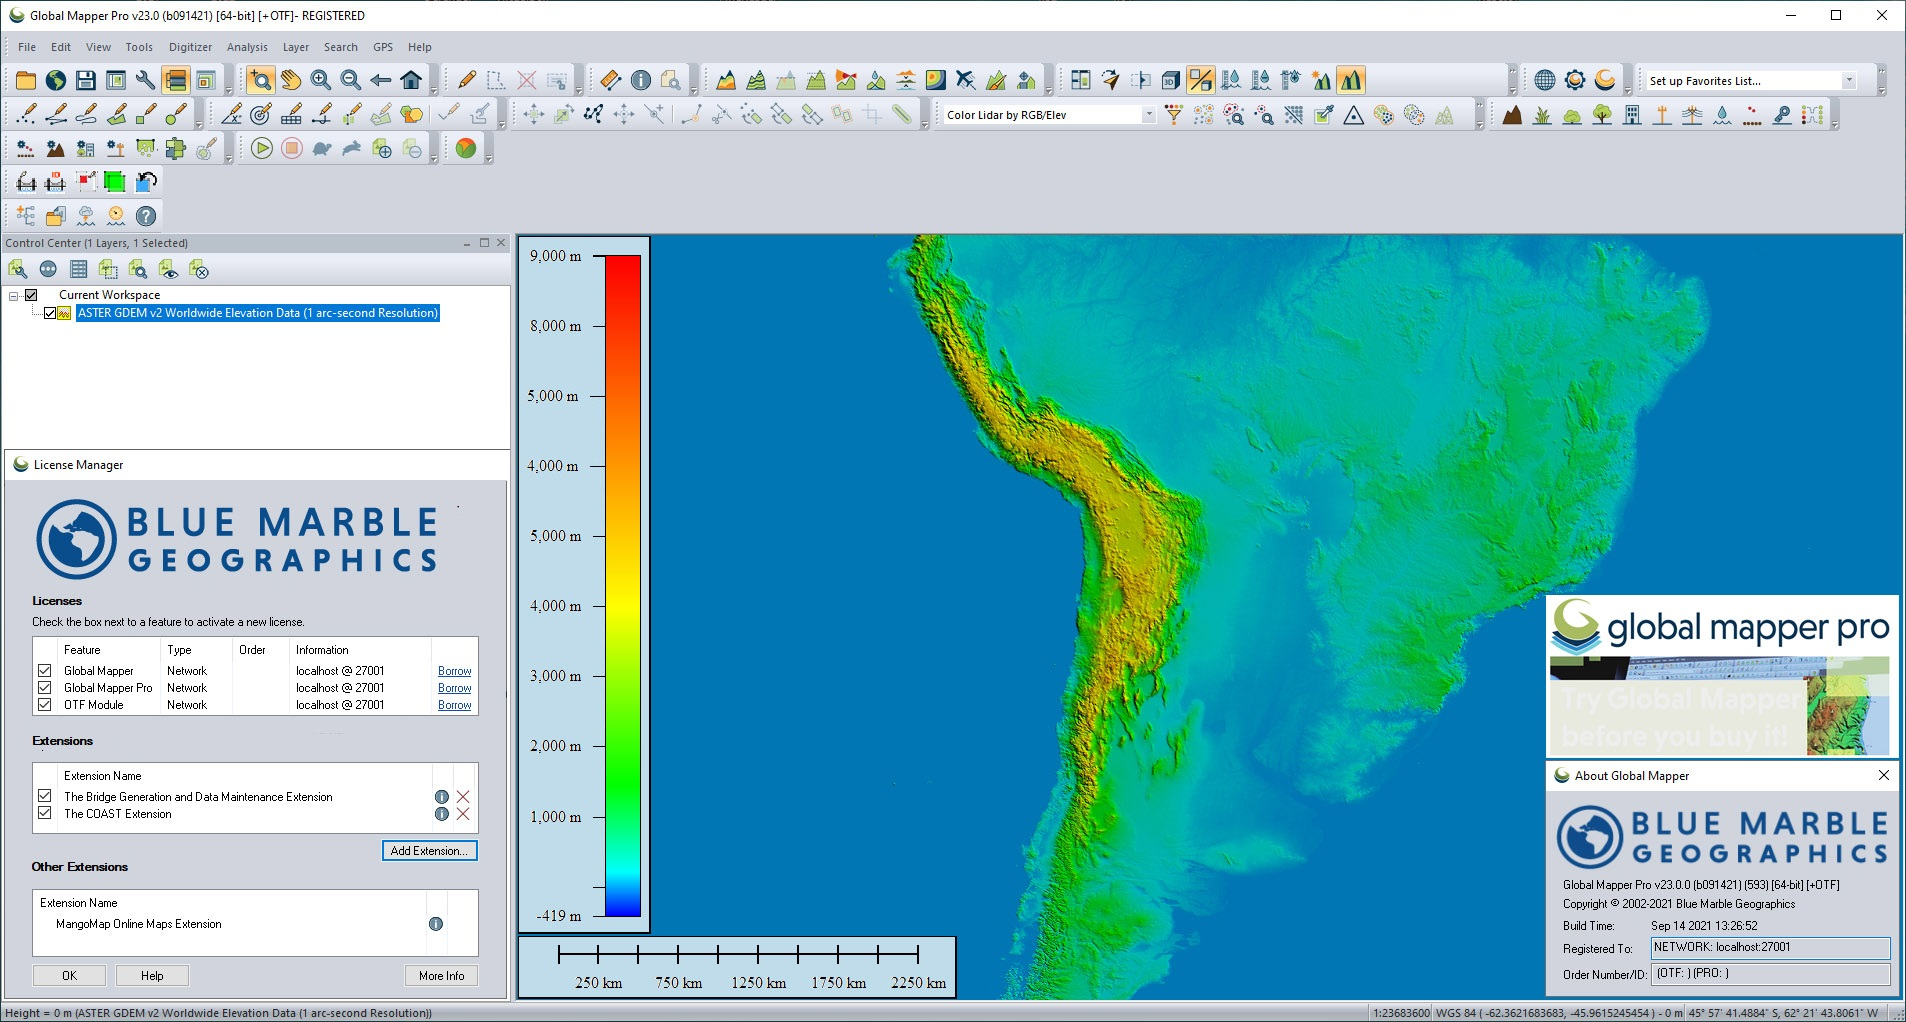 Working with Blue Marble Global Mapper Pro v23.0.0 build 091421 full